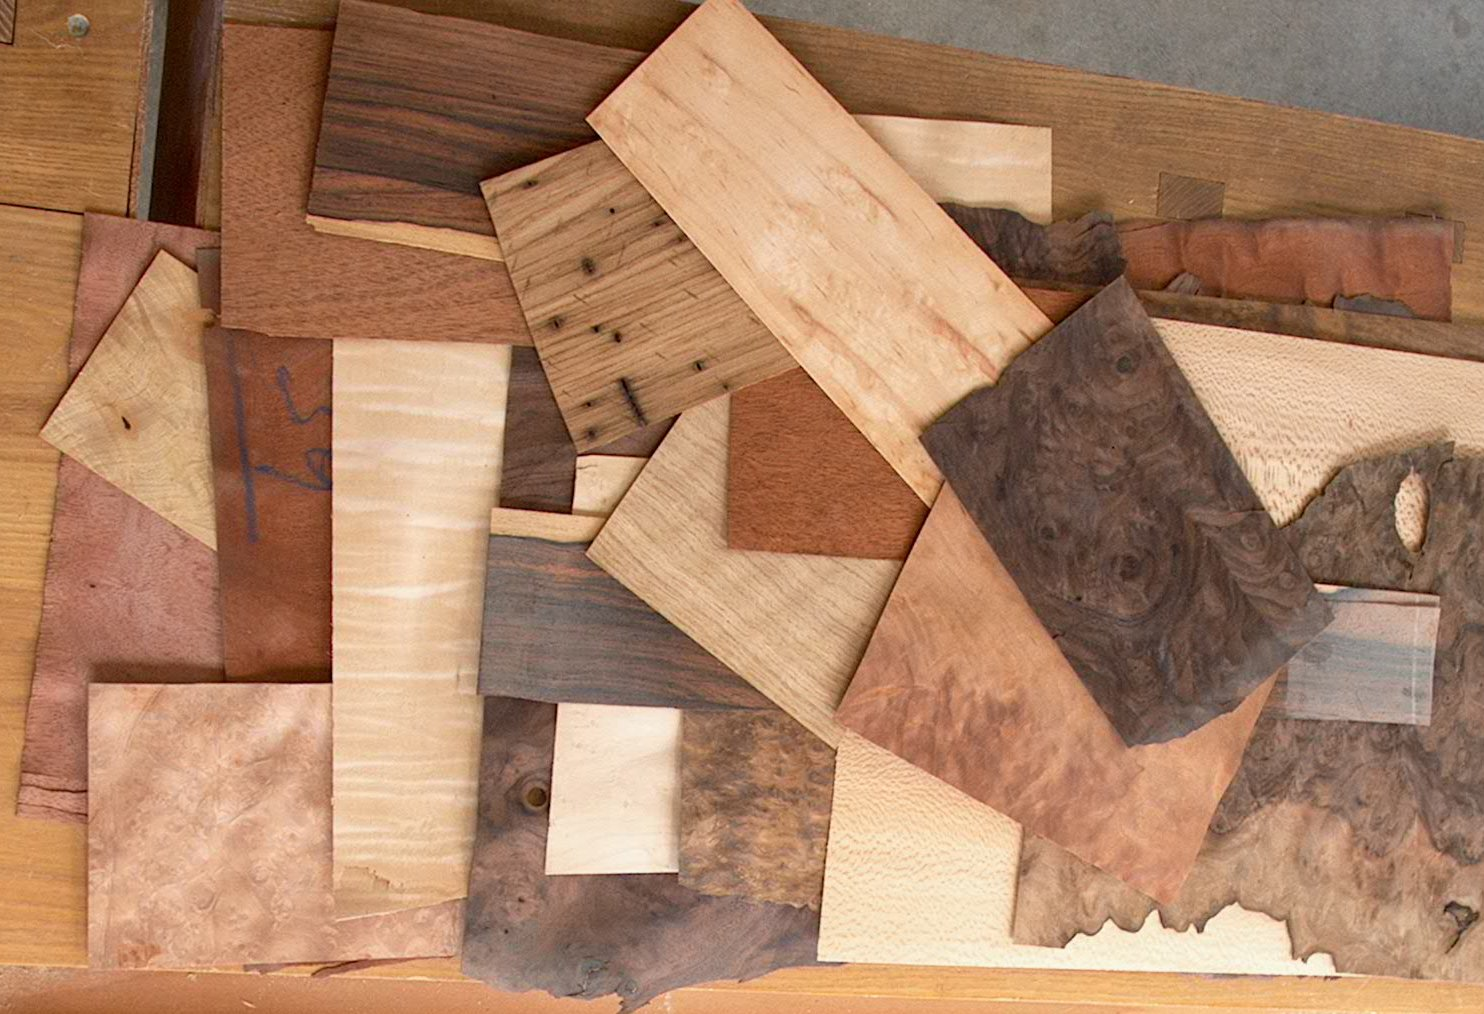 Wood veneer craft projects diy woodworking projects